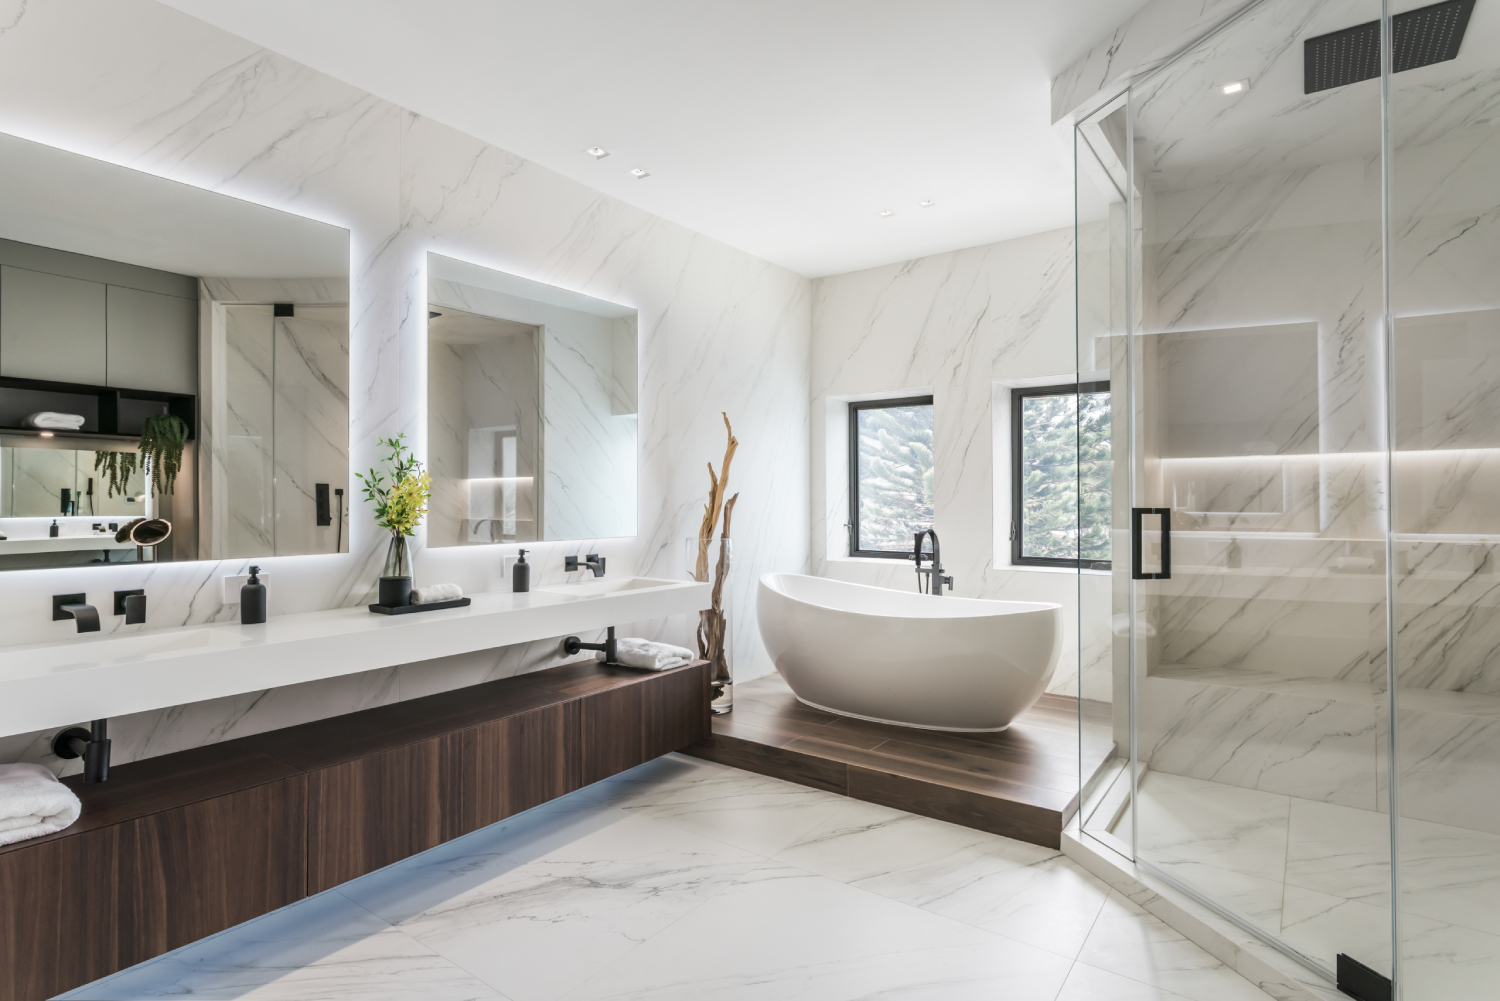 Large bathroom with soaking tub, shower stool and dark wood double vanity